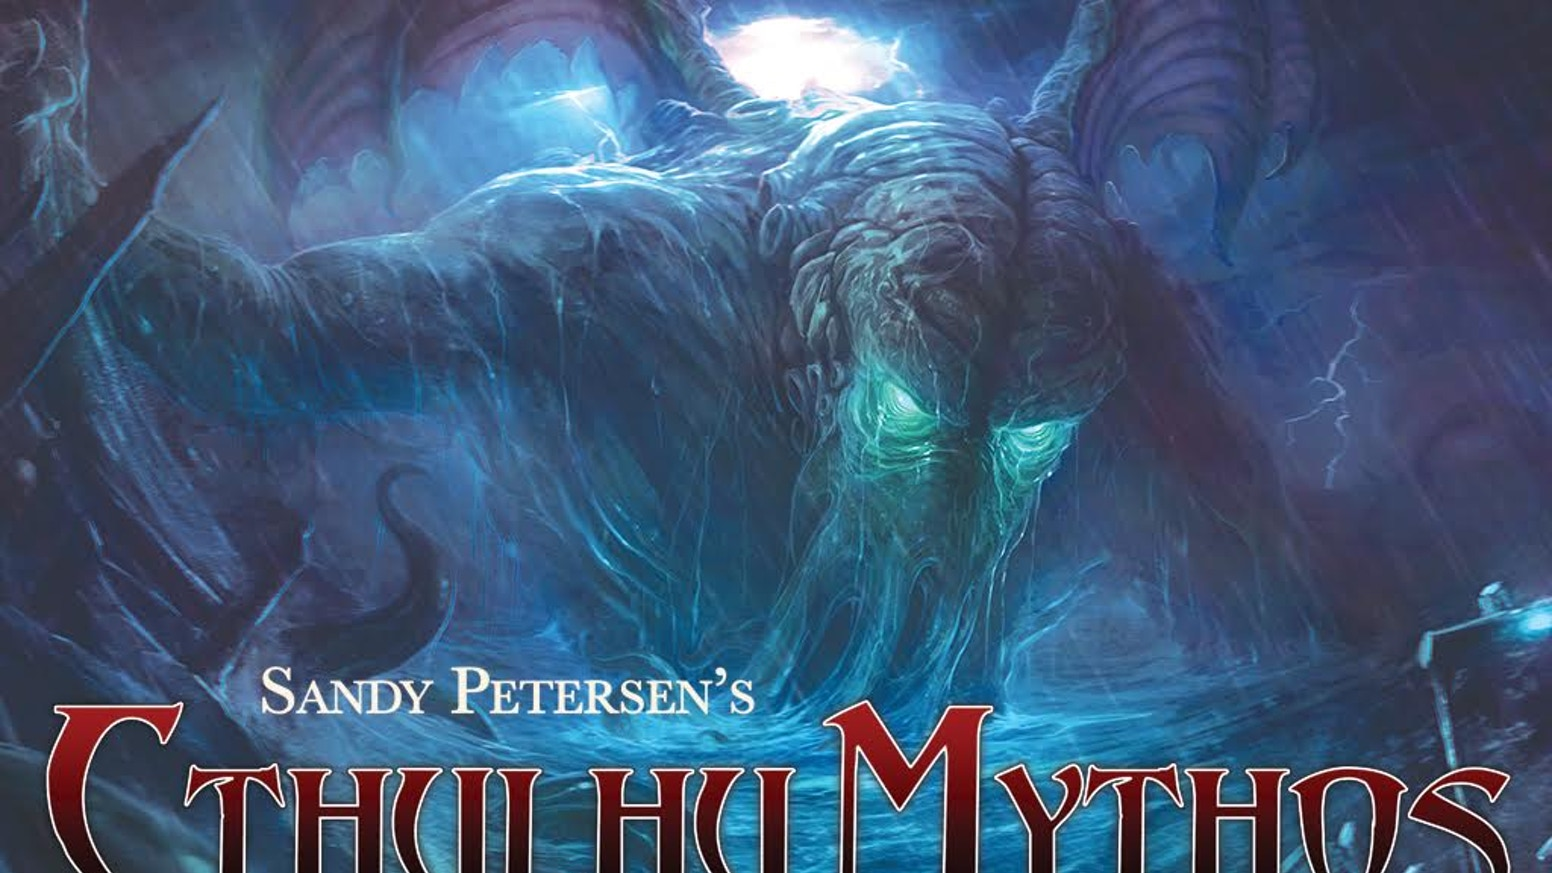 The definitive guide by Sandy Petersen. New rules and over 100 monsters for the Cthulhu Mythos plus tons of 28mm scale miniatures.